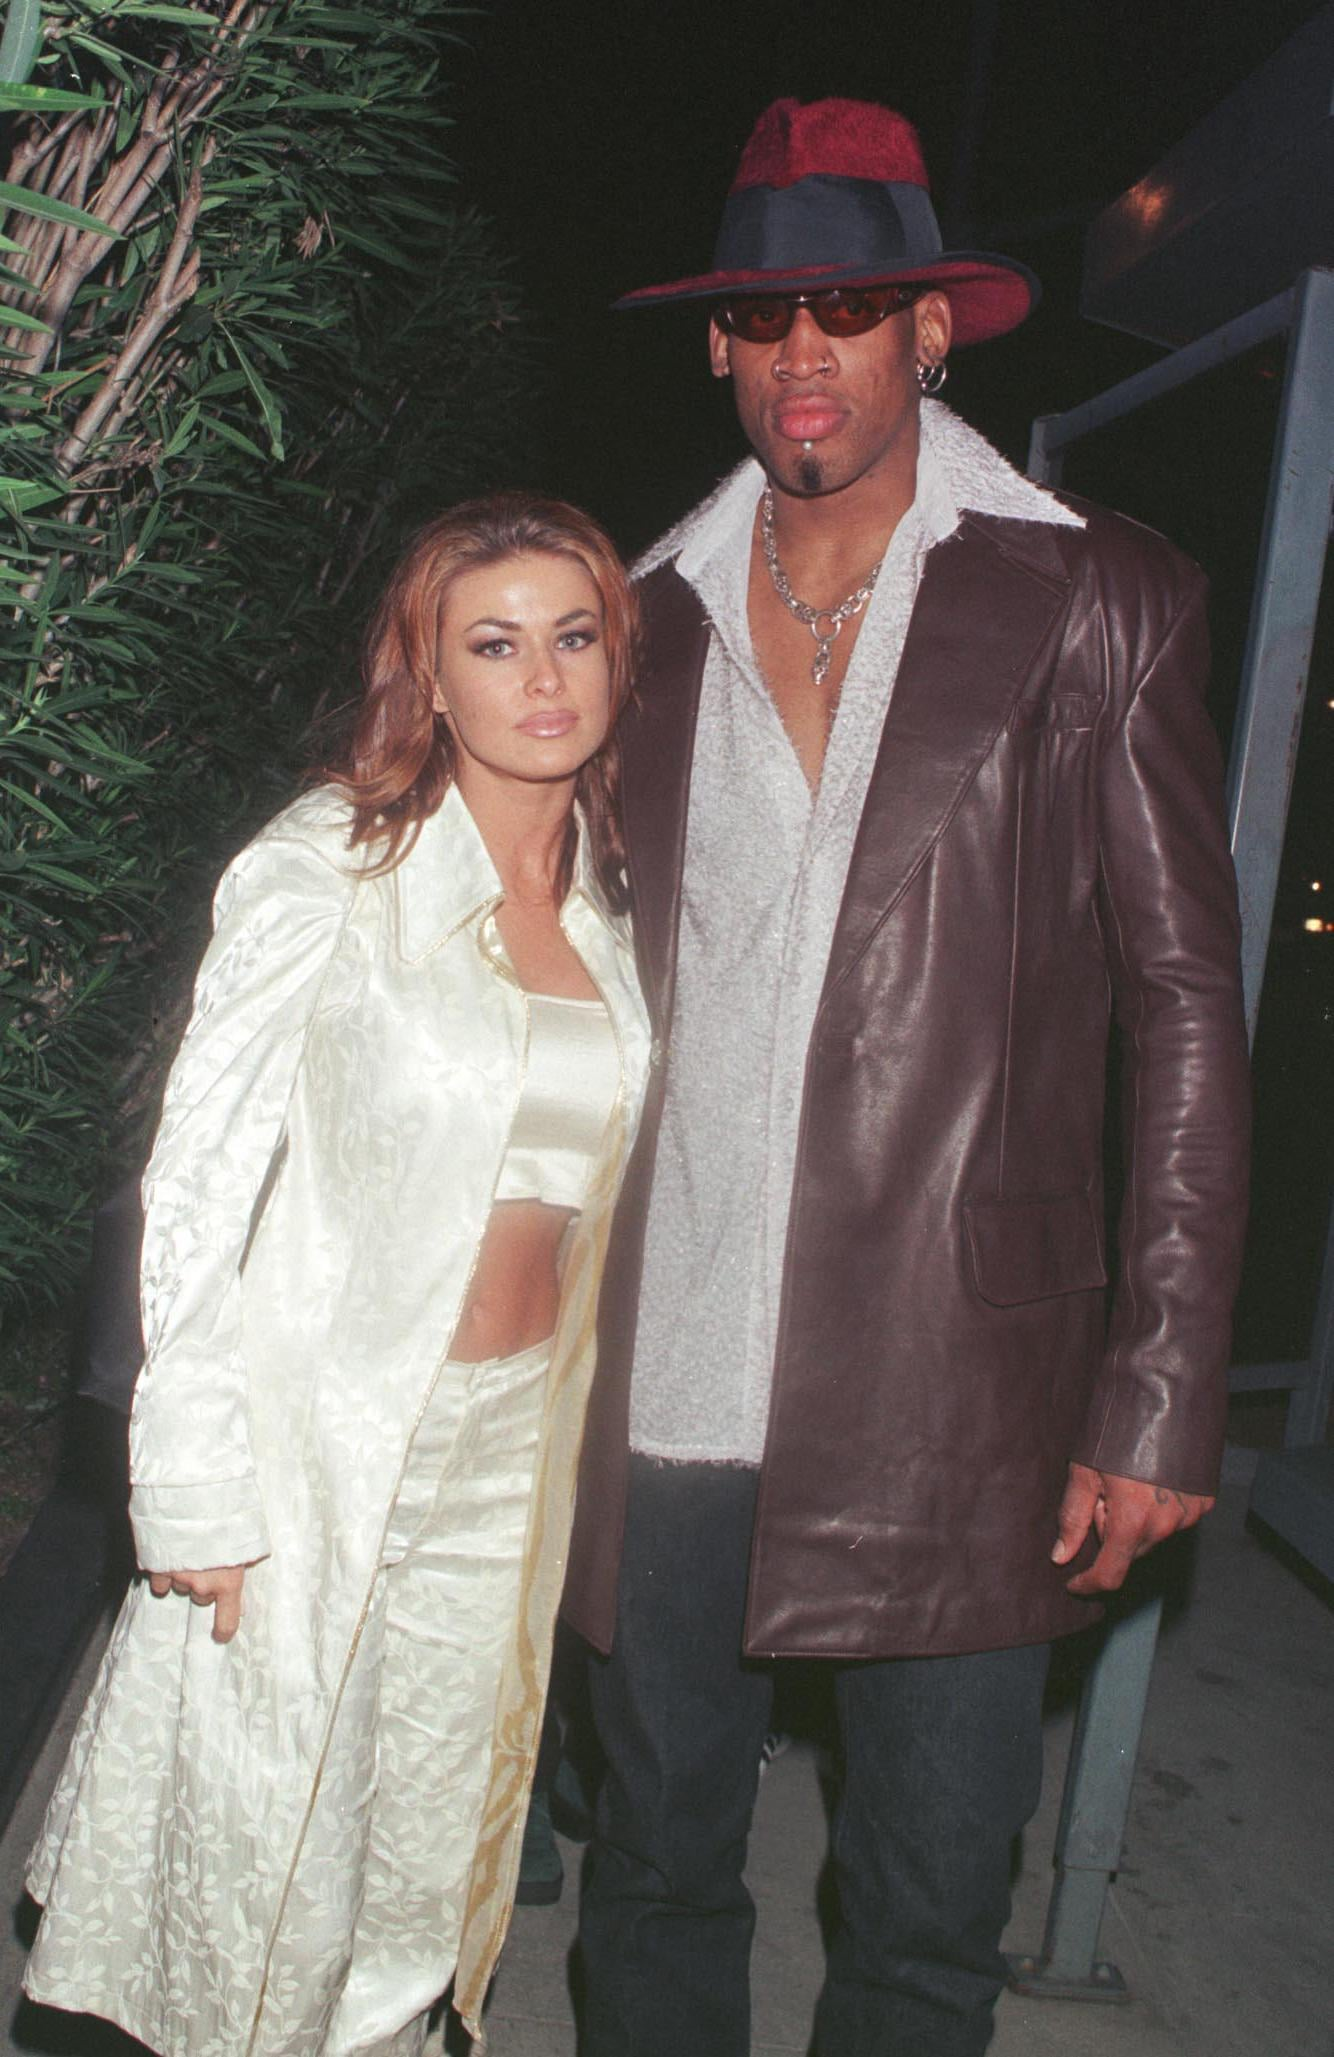 2/26/99 Beverly Hills, CA. New Laker Dennis Rodman celebrates his first winning game out on the town at GOODBAR with wife Carmen Electra.